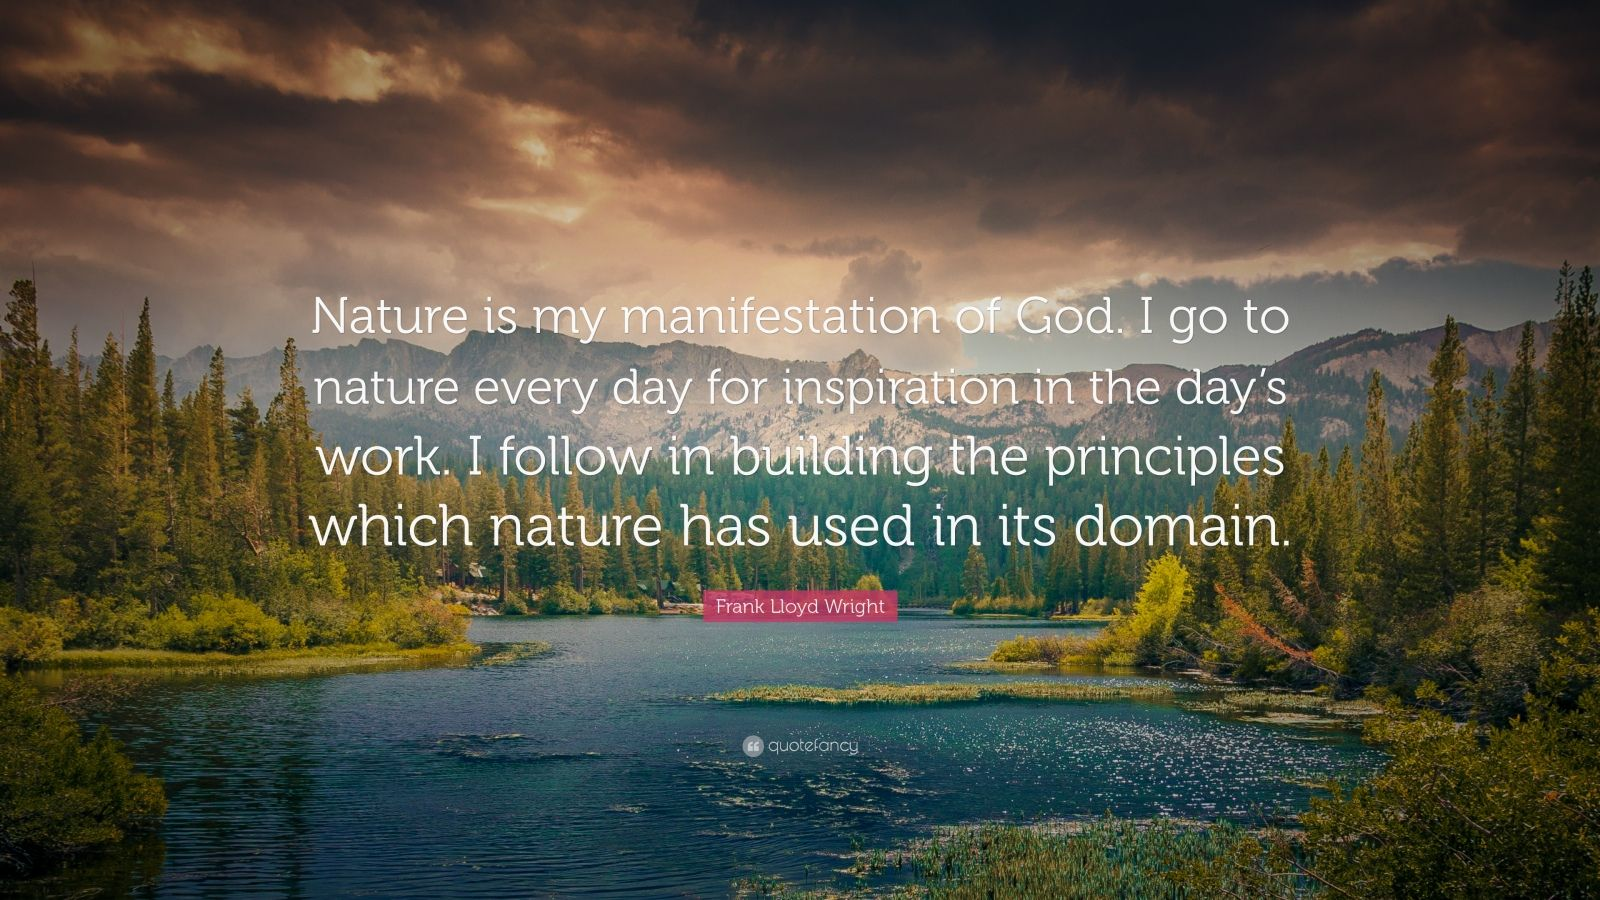 """Frank Lloyd Wright Quote: """"Nature is my manifestation of God. I go to nature every day for inspiration in the day's work. I follow in building the principles which nature has used in its domain."""""""